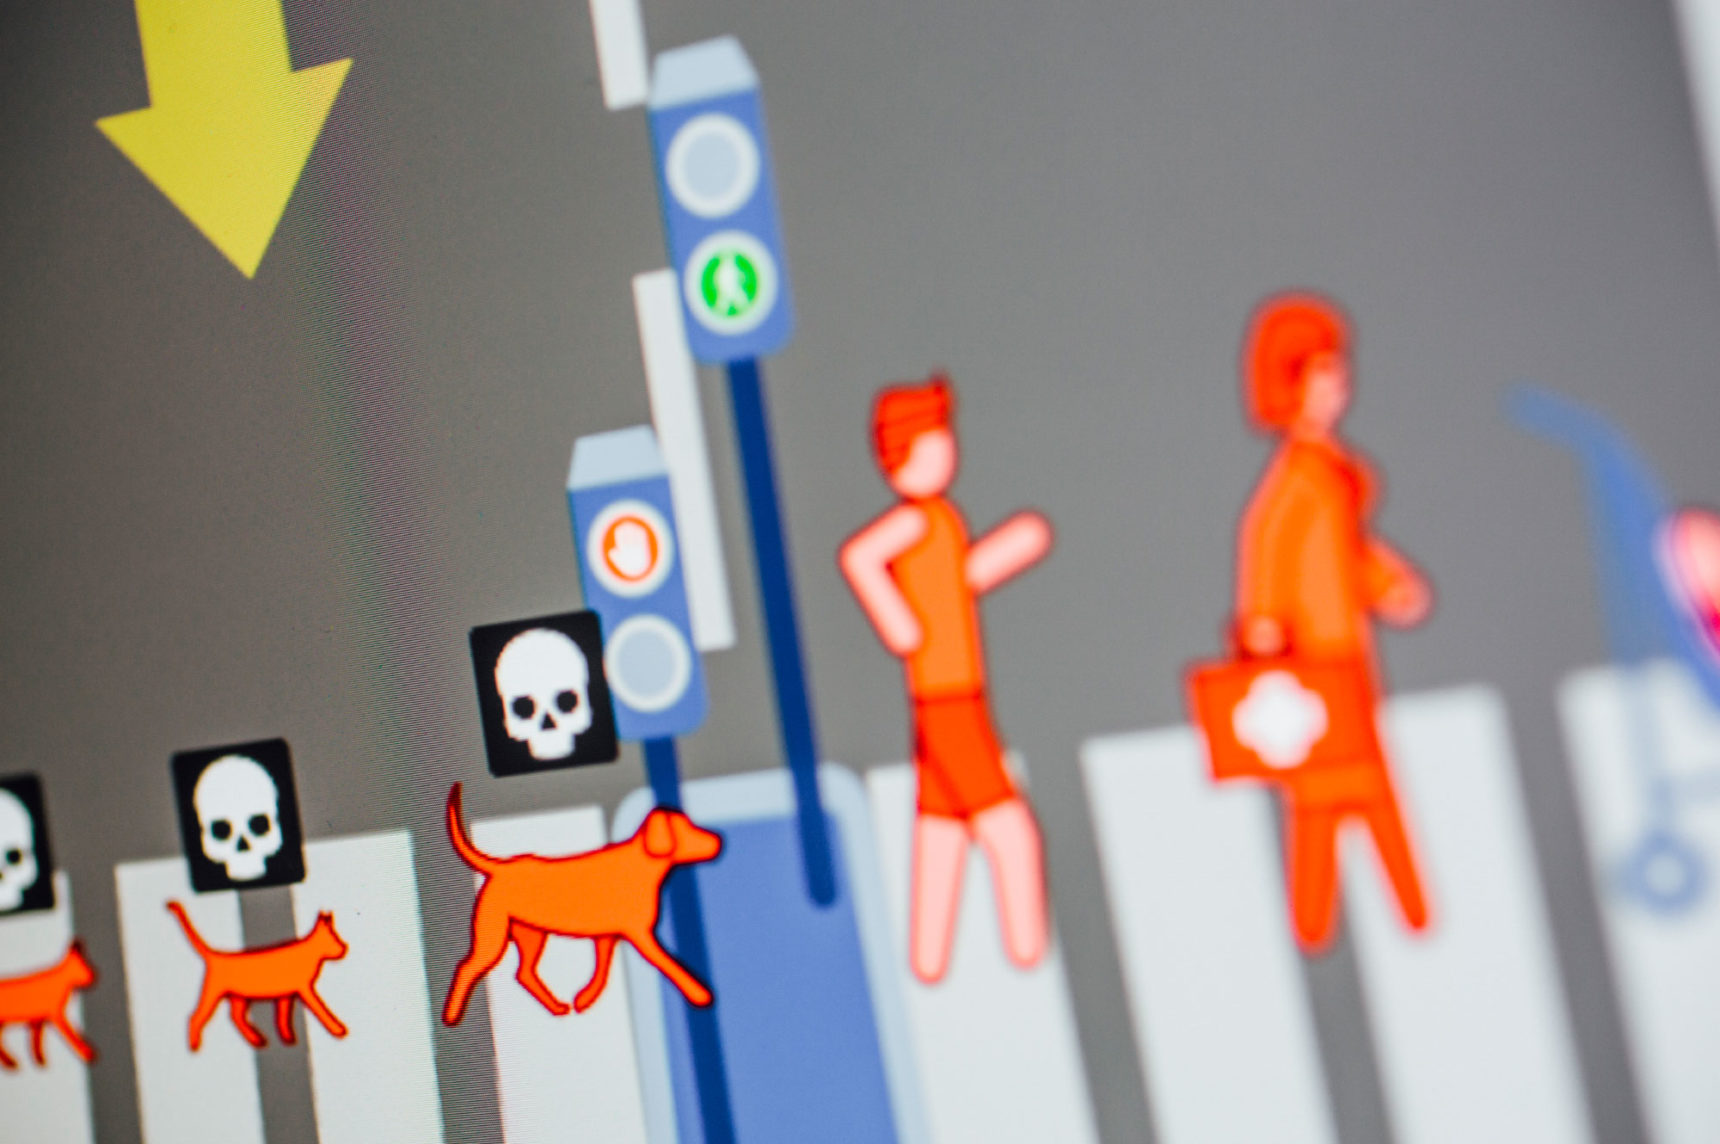 A screenshot of dogs and people from the moral machine experiment.